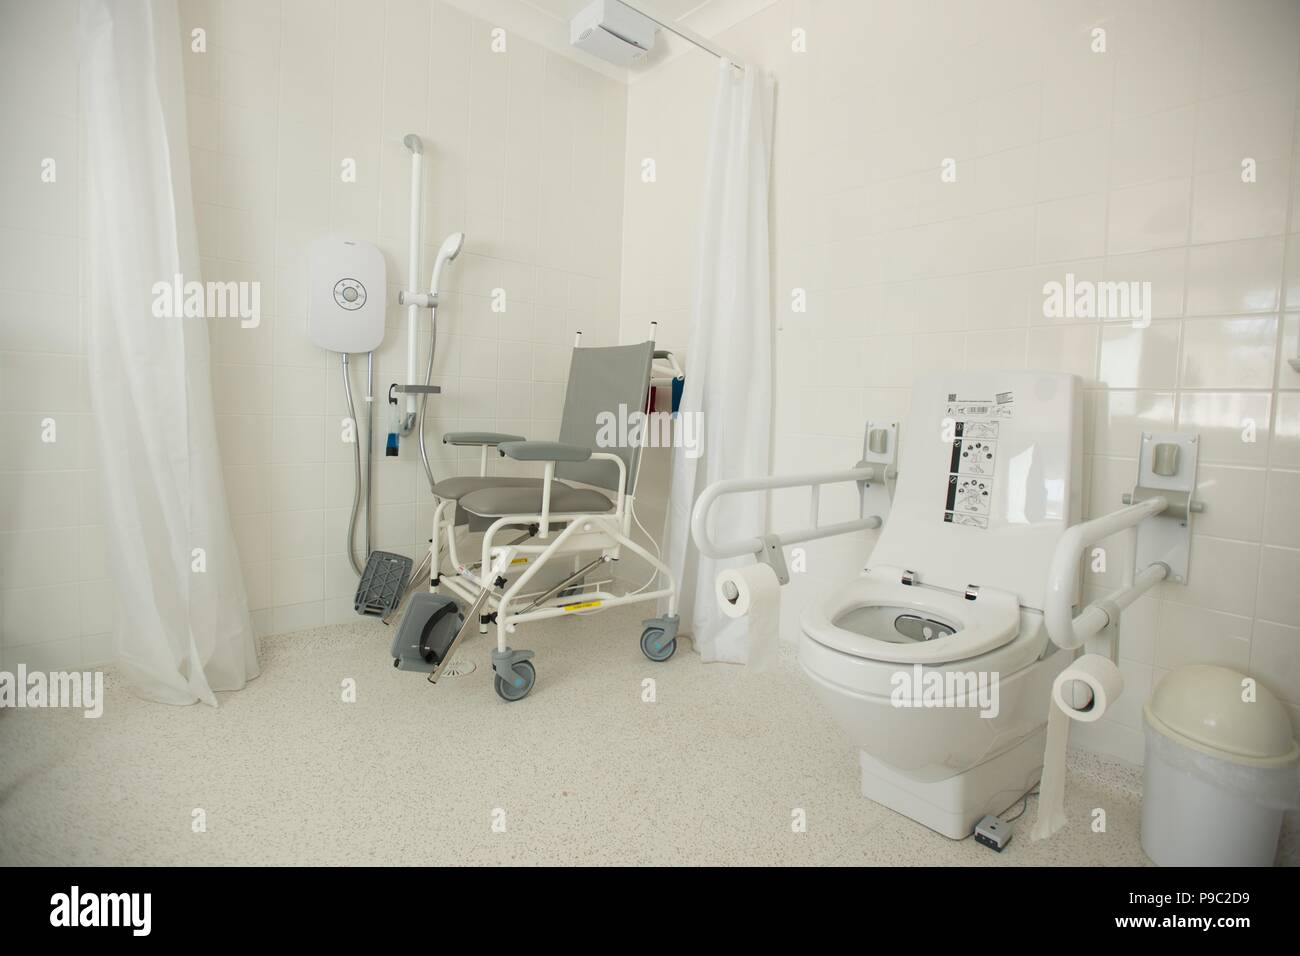 Disabled Toilet And Shower Facility At The Home Of A Disabled Person Stock Photo Alamy